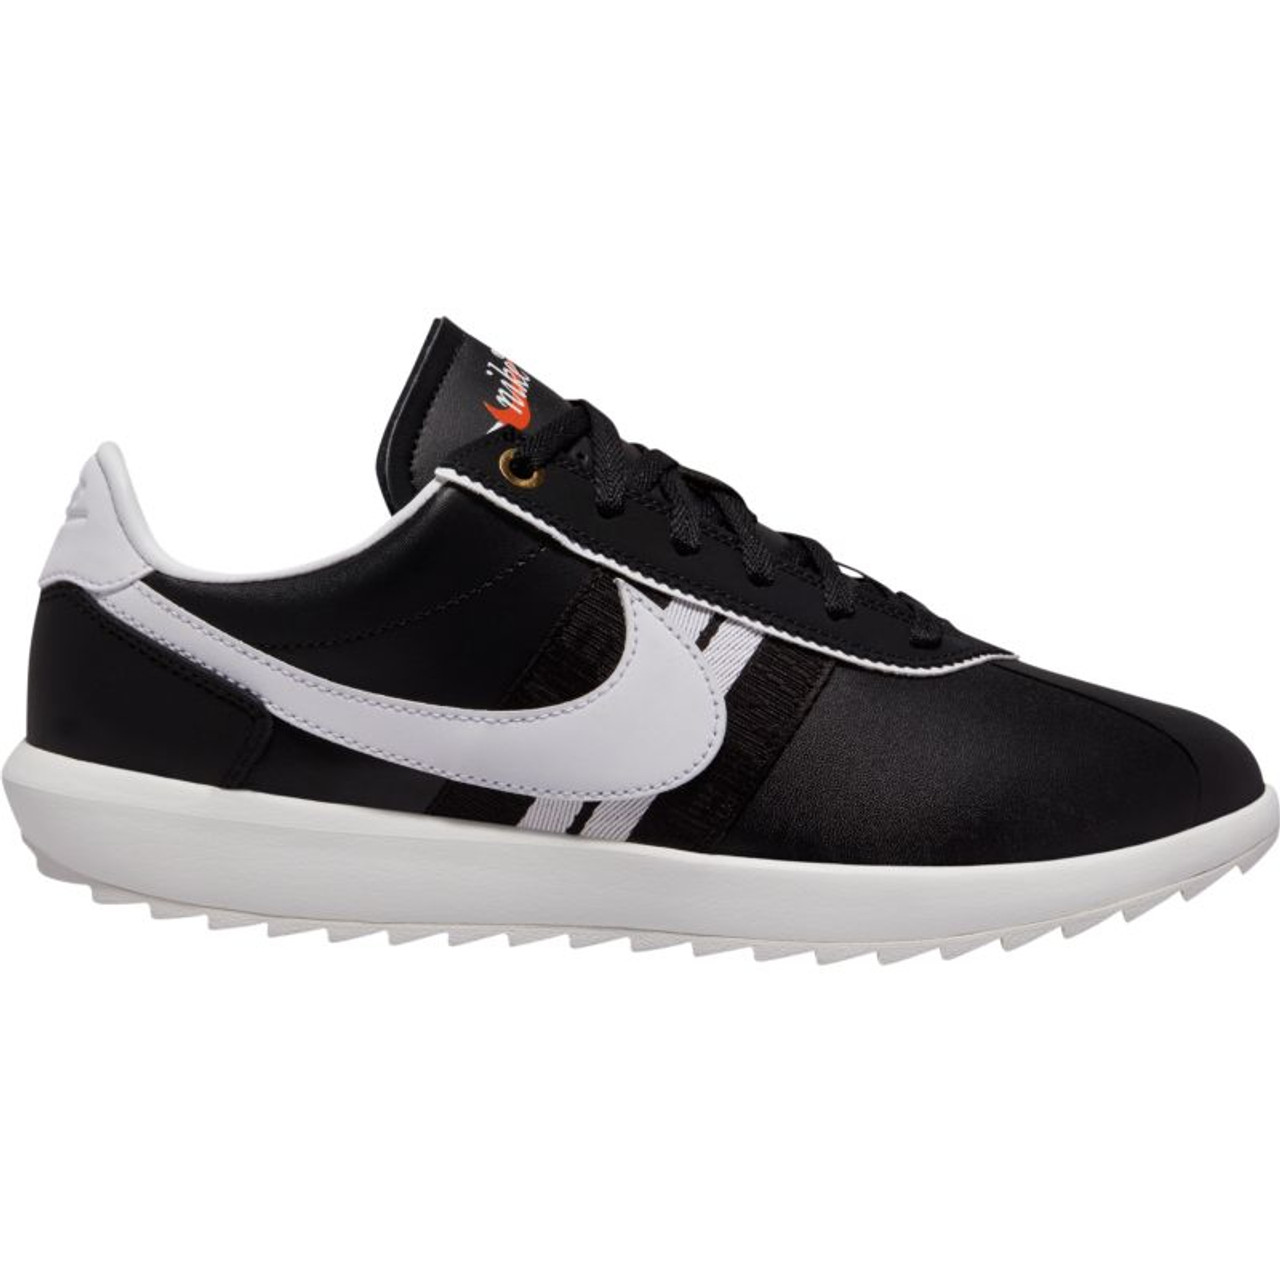 Nike Womens Cortez G Golf Shoes - Black / White / Metallic Gold